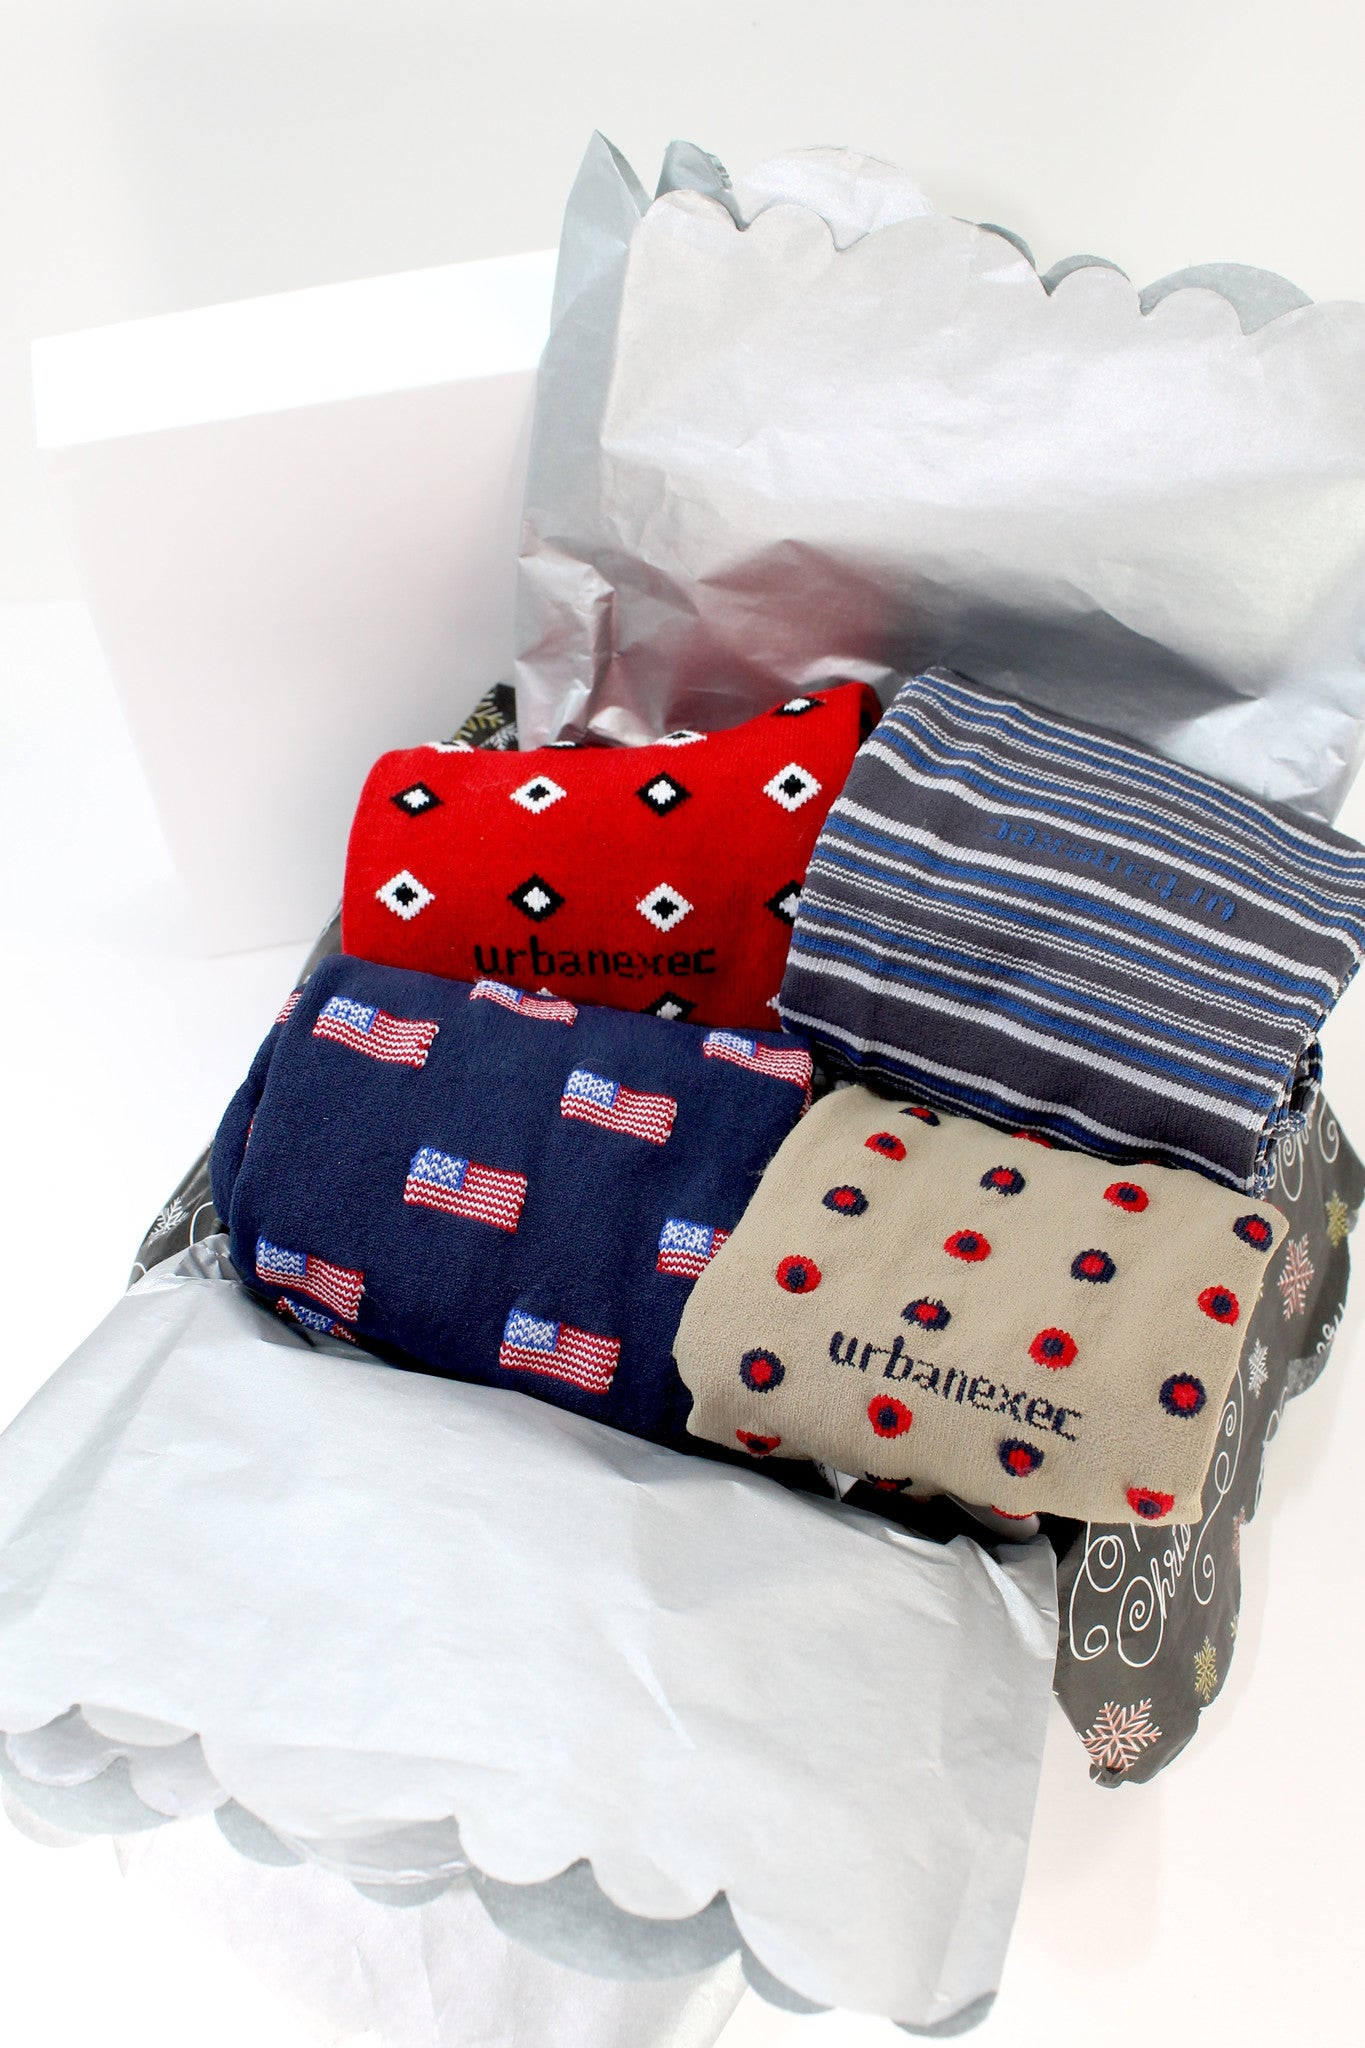 A Custom Gift Box with **4 Pairs of Men's Colorful Over-the-Calf Socks!